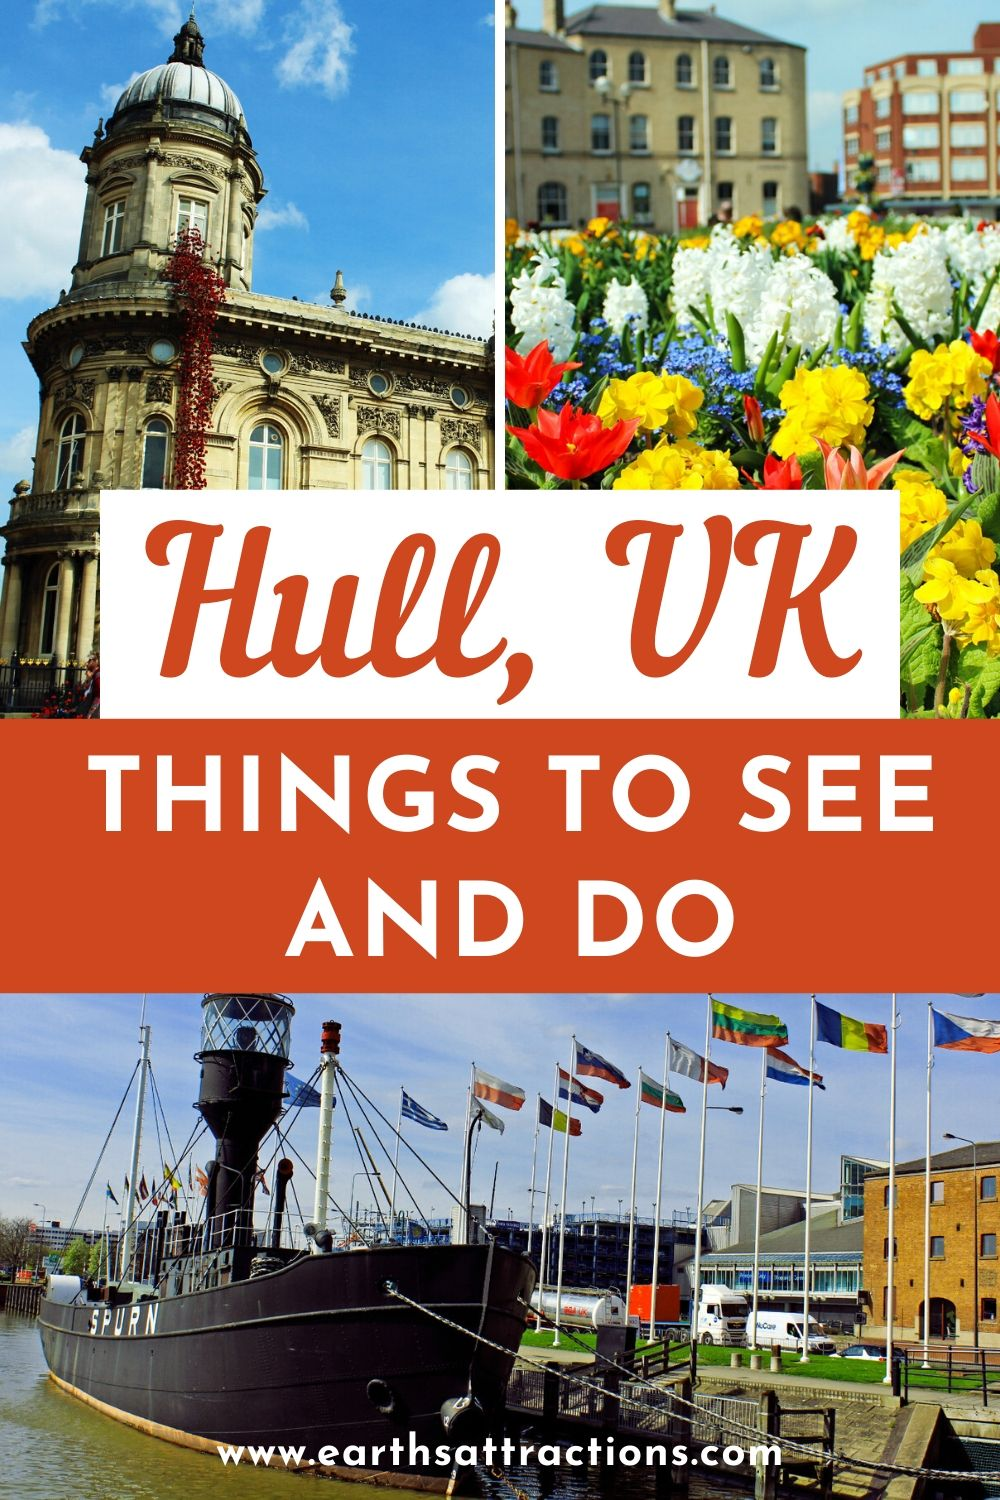 The best things to do in Hull, UK. Discover the top off the beaten path things to do in Hull, as well as the best attractions in Kingston upon Hull. Use this Hull guide when creating your Hull itinerary and your Hull bucketlist. #hull #uk #hullguide #travelguide #europe #unitedkingdom #earthsattractions #traveldestinations #smallcity